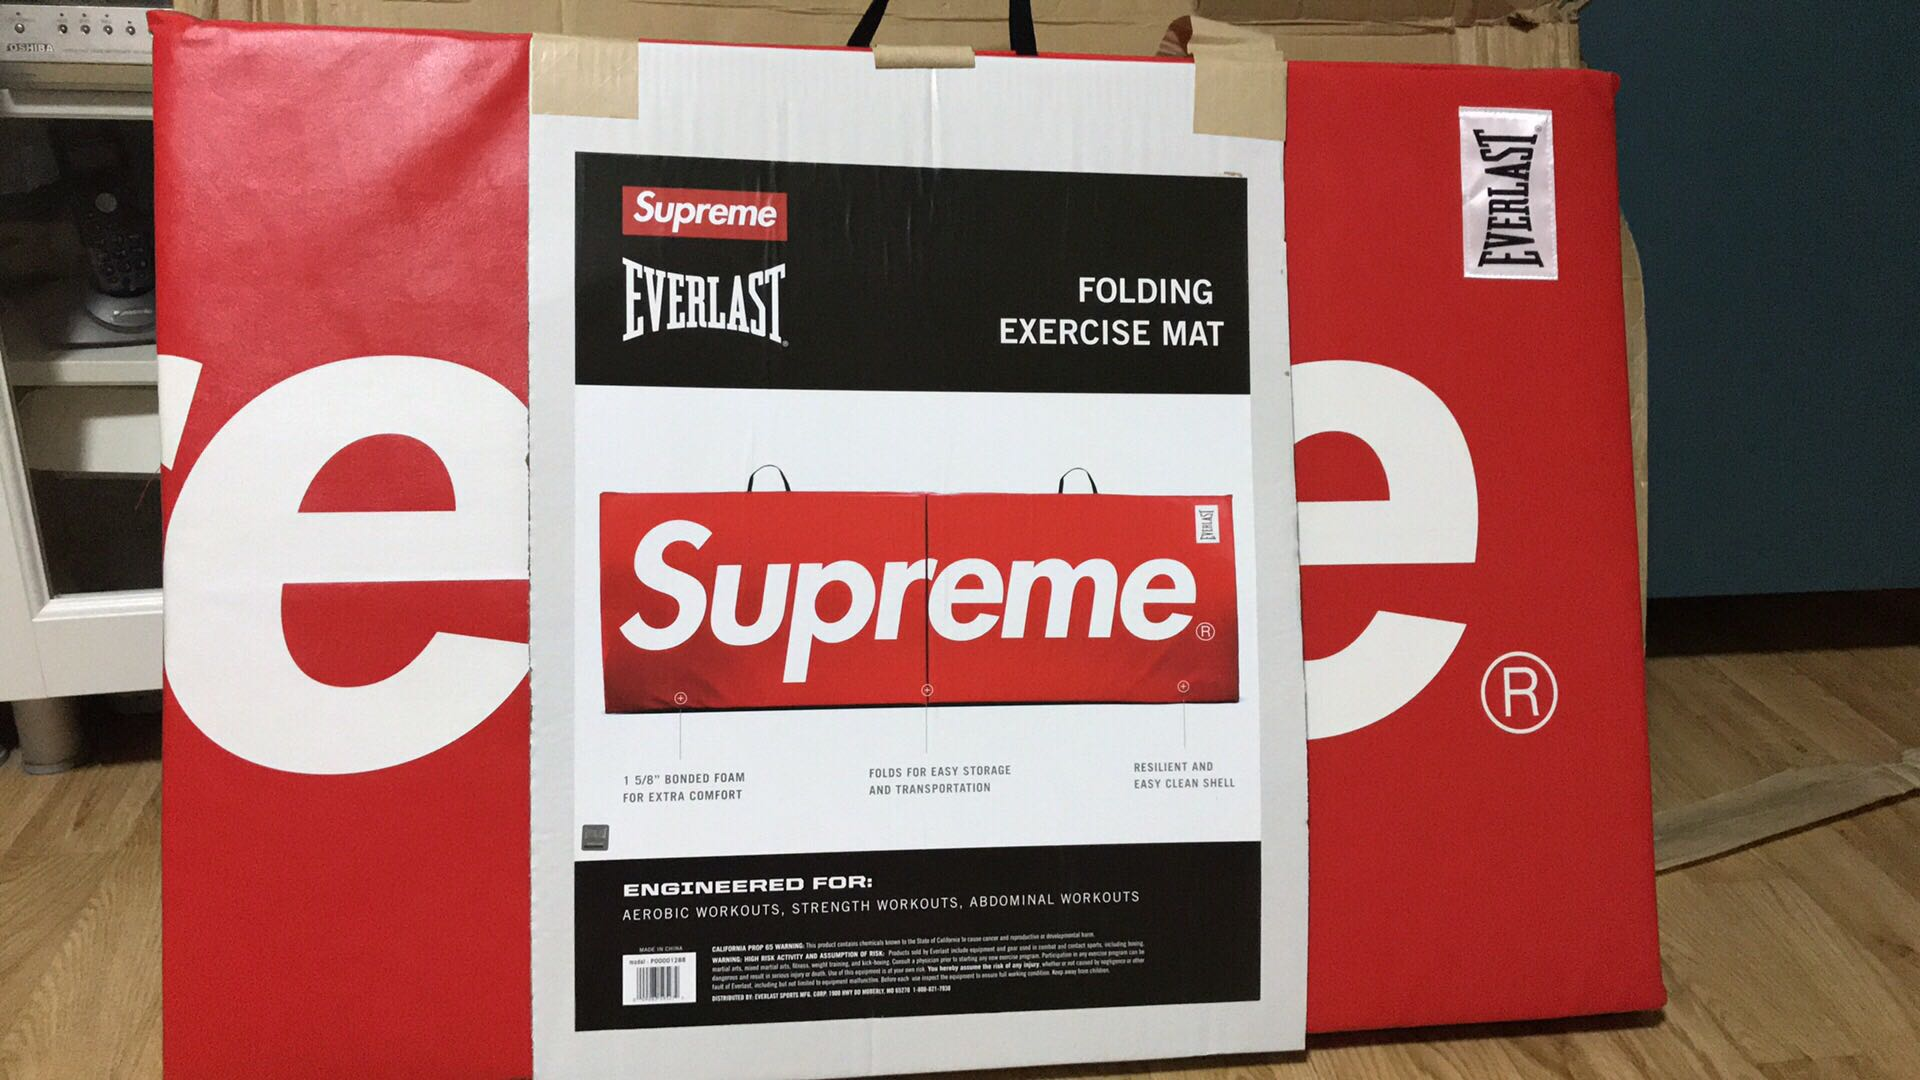 Supreme X Everlast Folding Exercise Mat